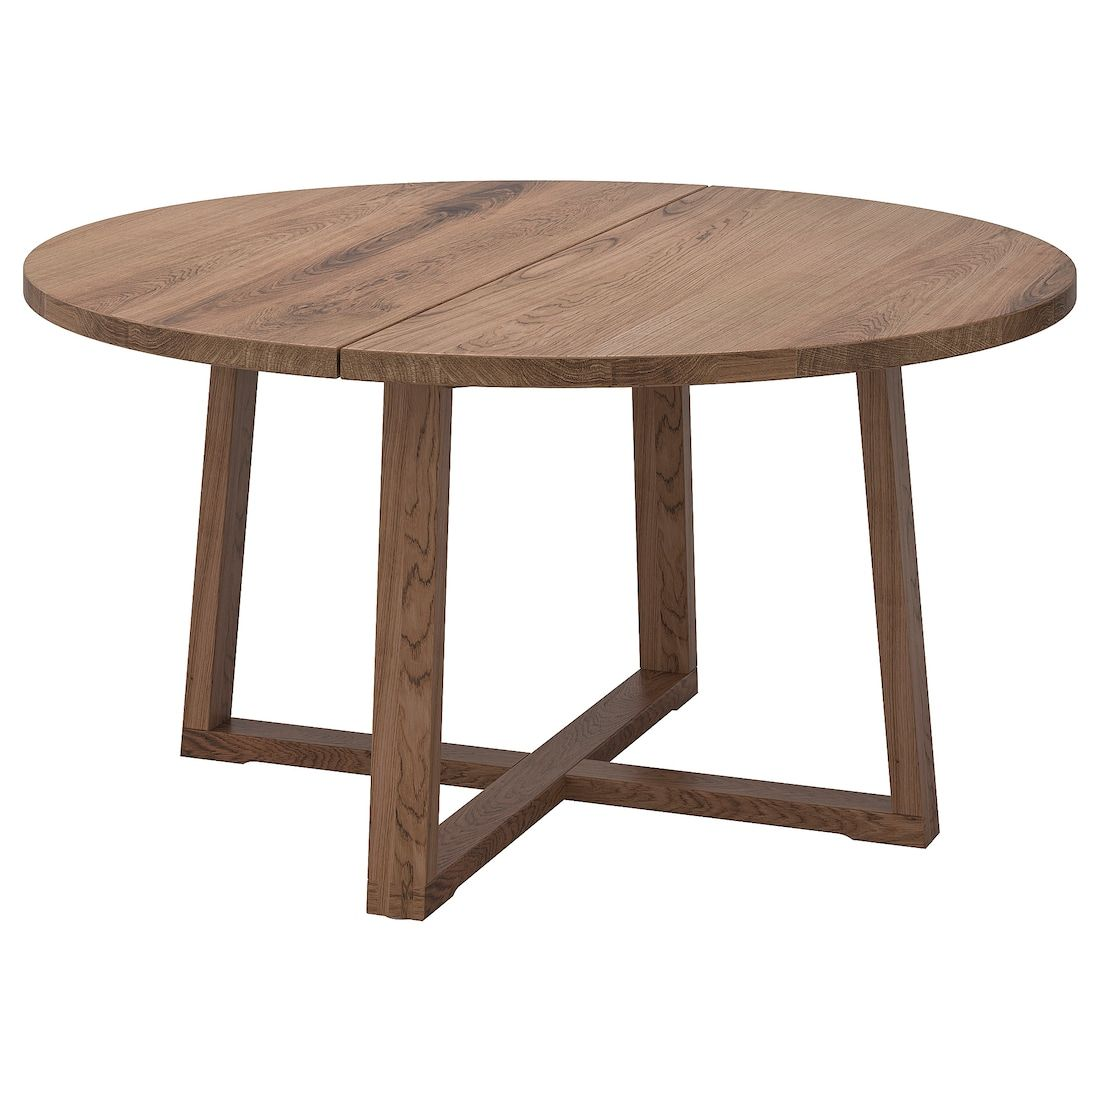 Morbylanga Table Oak Veneer Brown Stained Length 57 1 8 Ikea In 2020 Ikea Coffee Table Dining Table Coffee Table Wood [ 1100 x 1100 Pixel ]